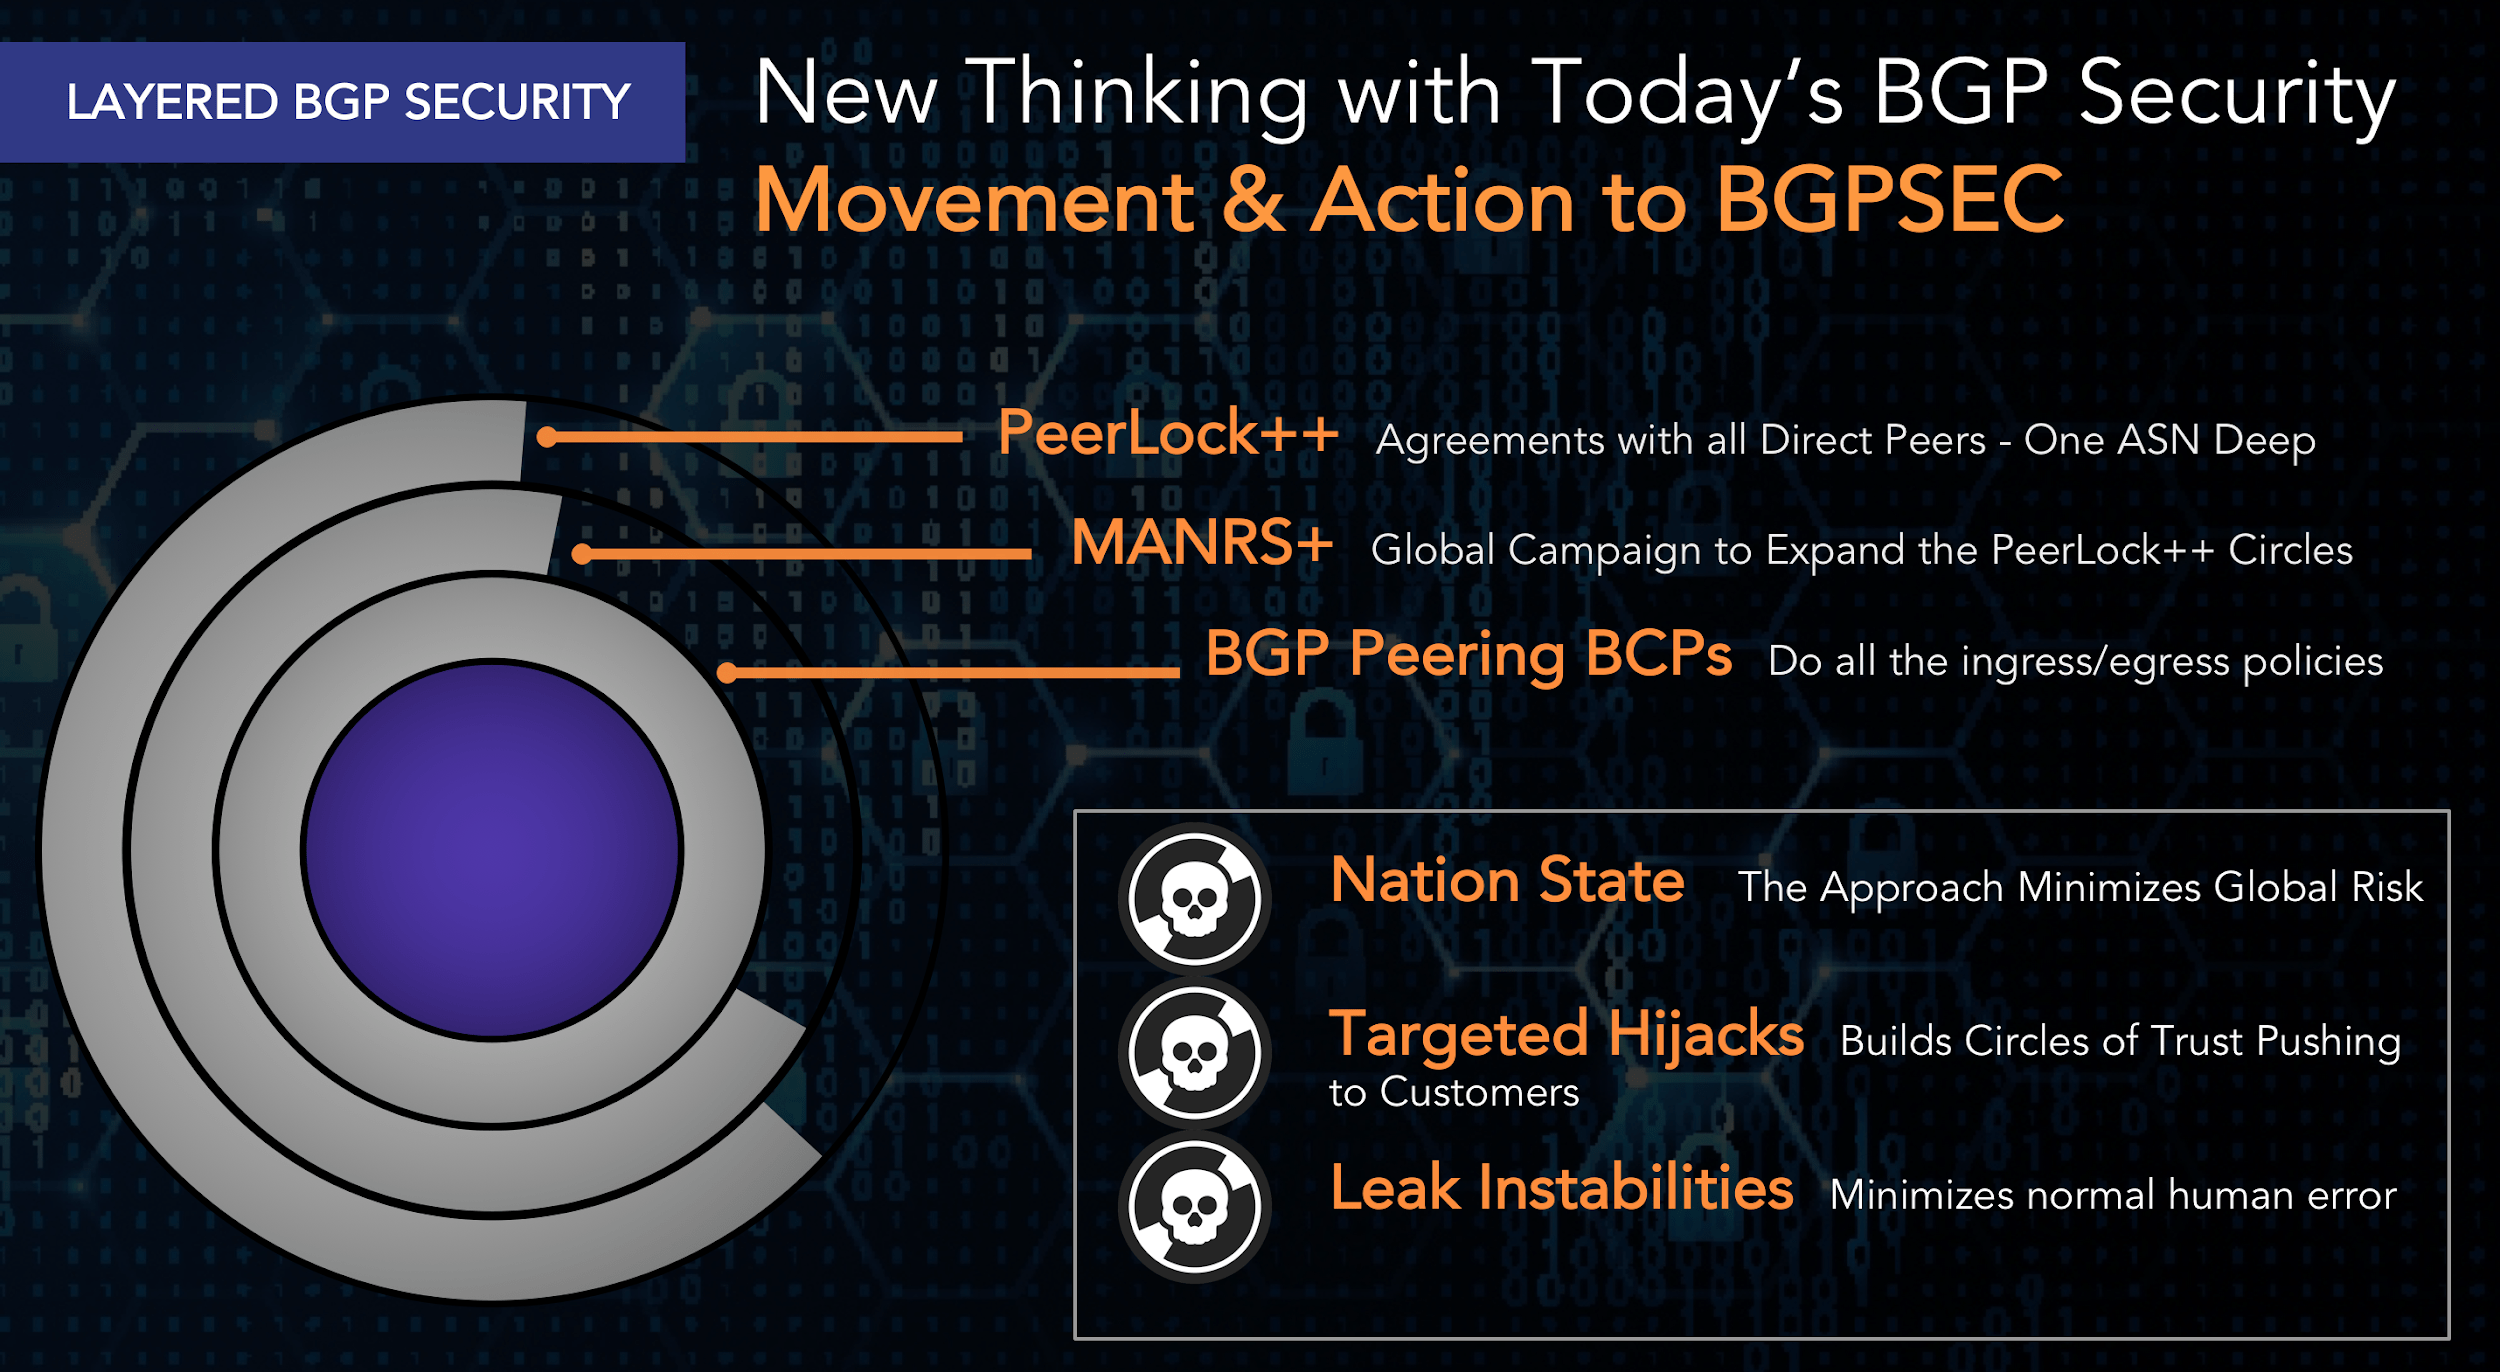 BGP Route Hijacks & Routing Mistakes - What can be done